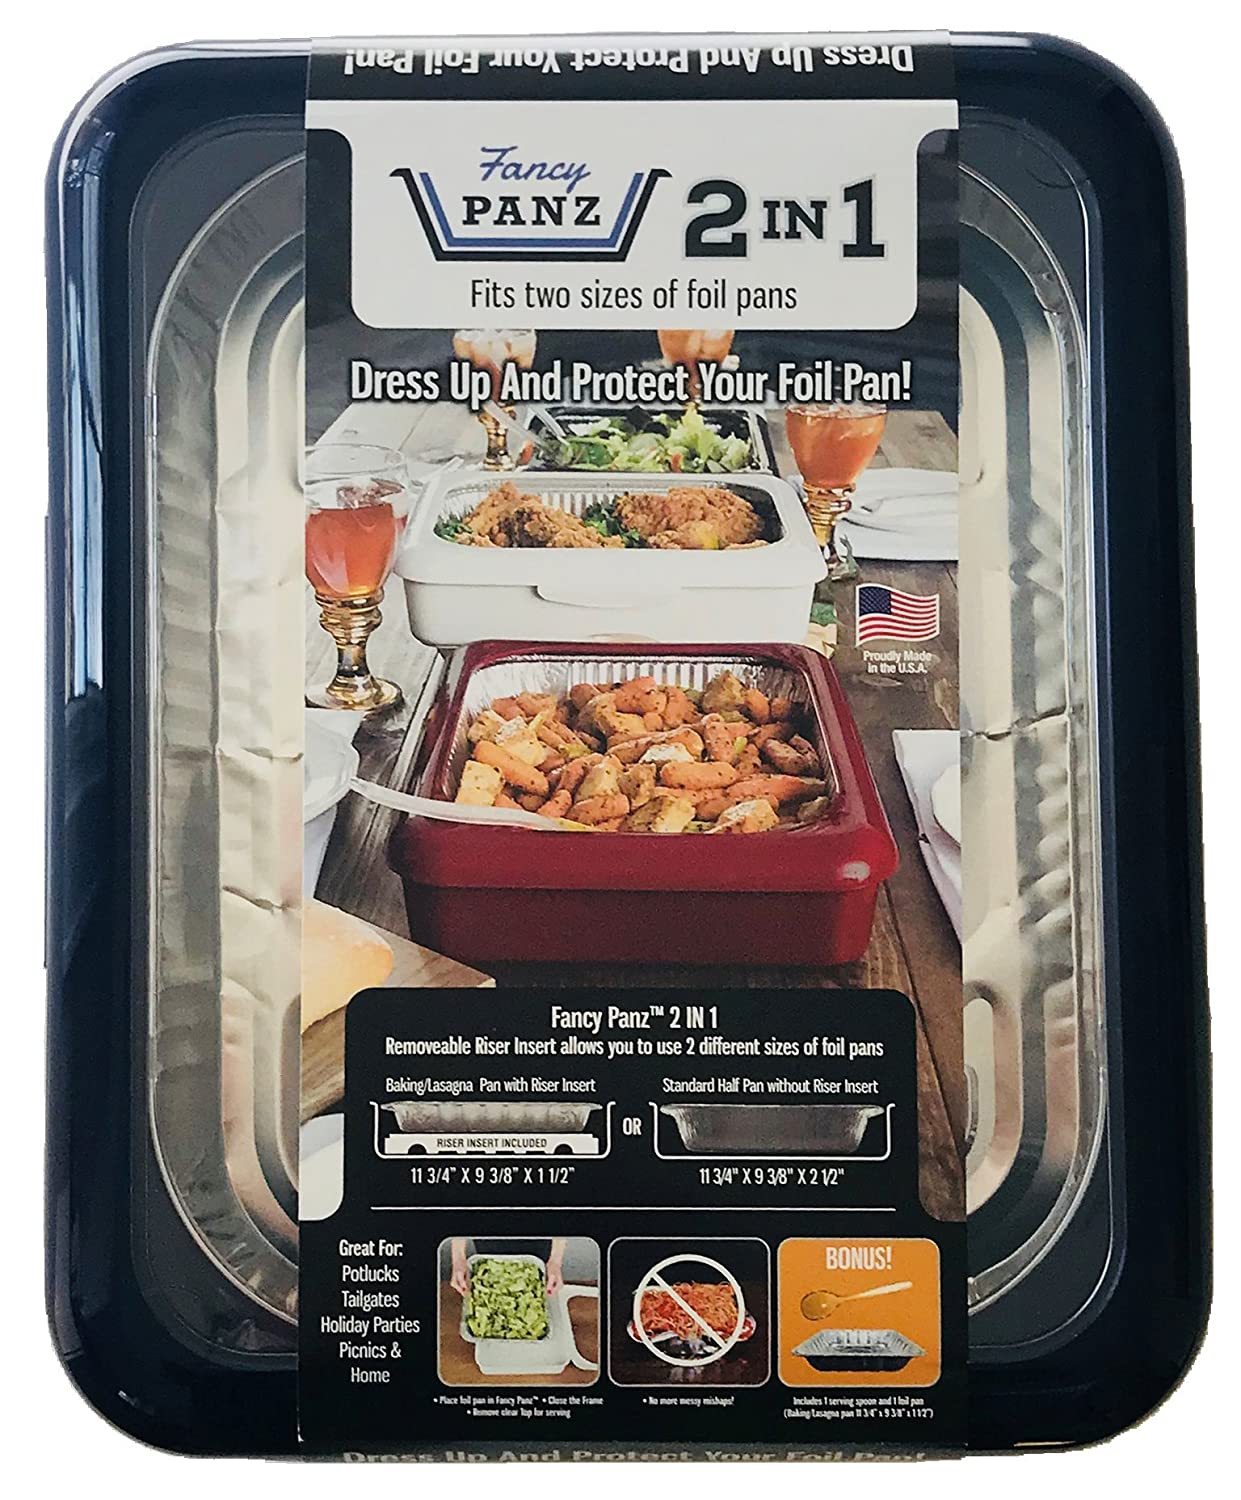 Fancy Panz FP21004 2 in 1 Portable Casserole Carrier for Indoor and Outdoor Use, fits Shallow or Standard Half Size Foil Pans, Bonus Serving Spoon and Foil Pan Included, Navy Blue